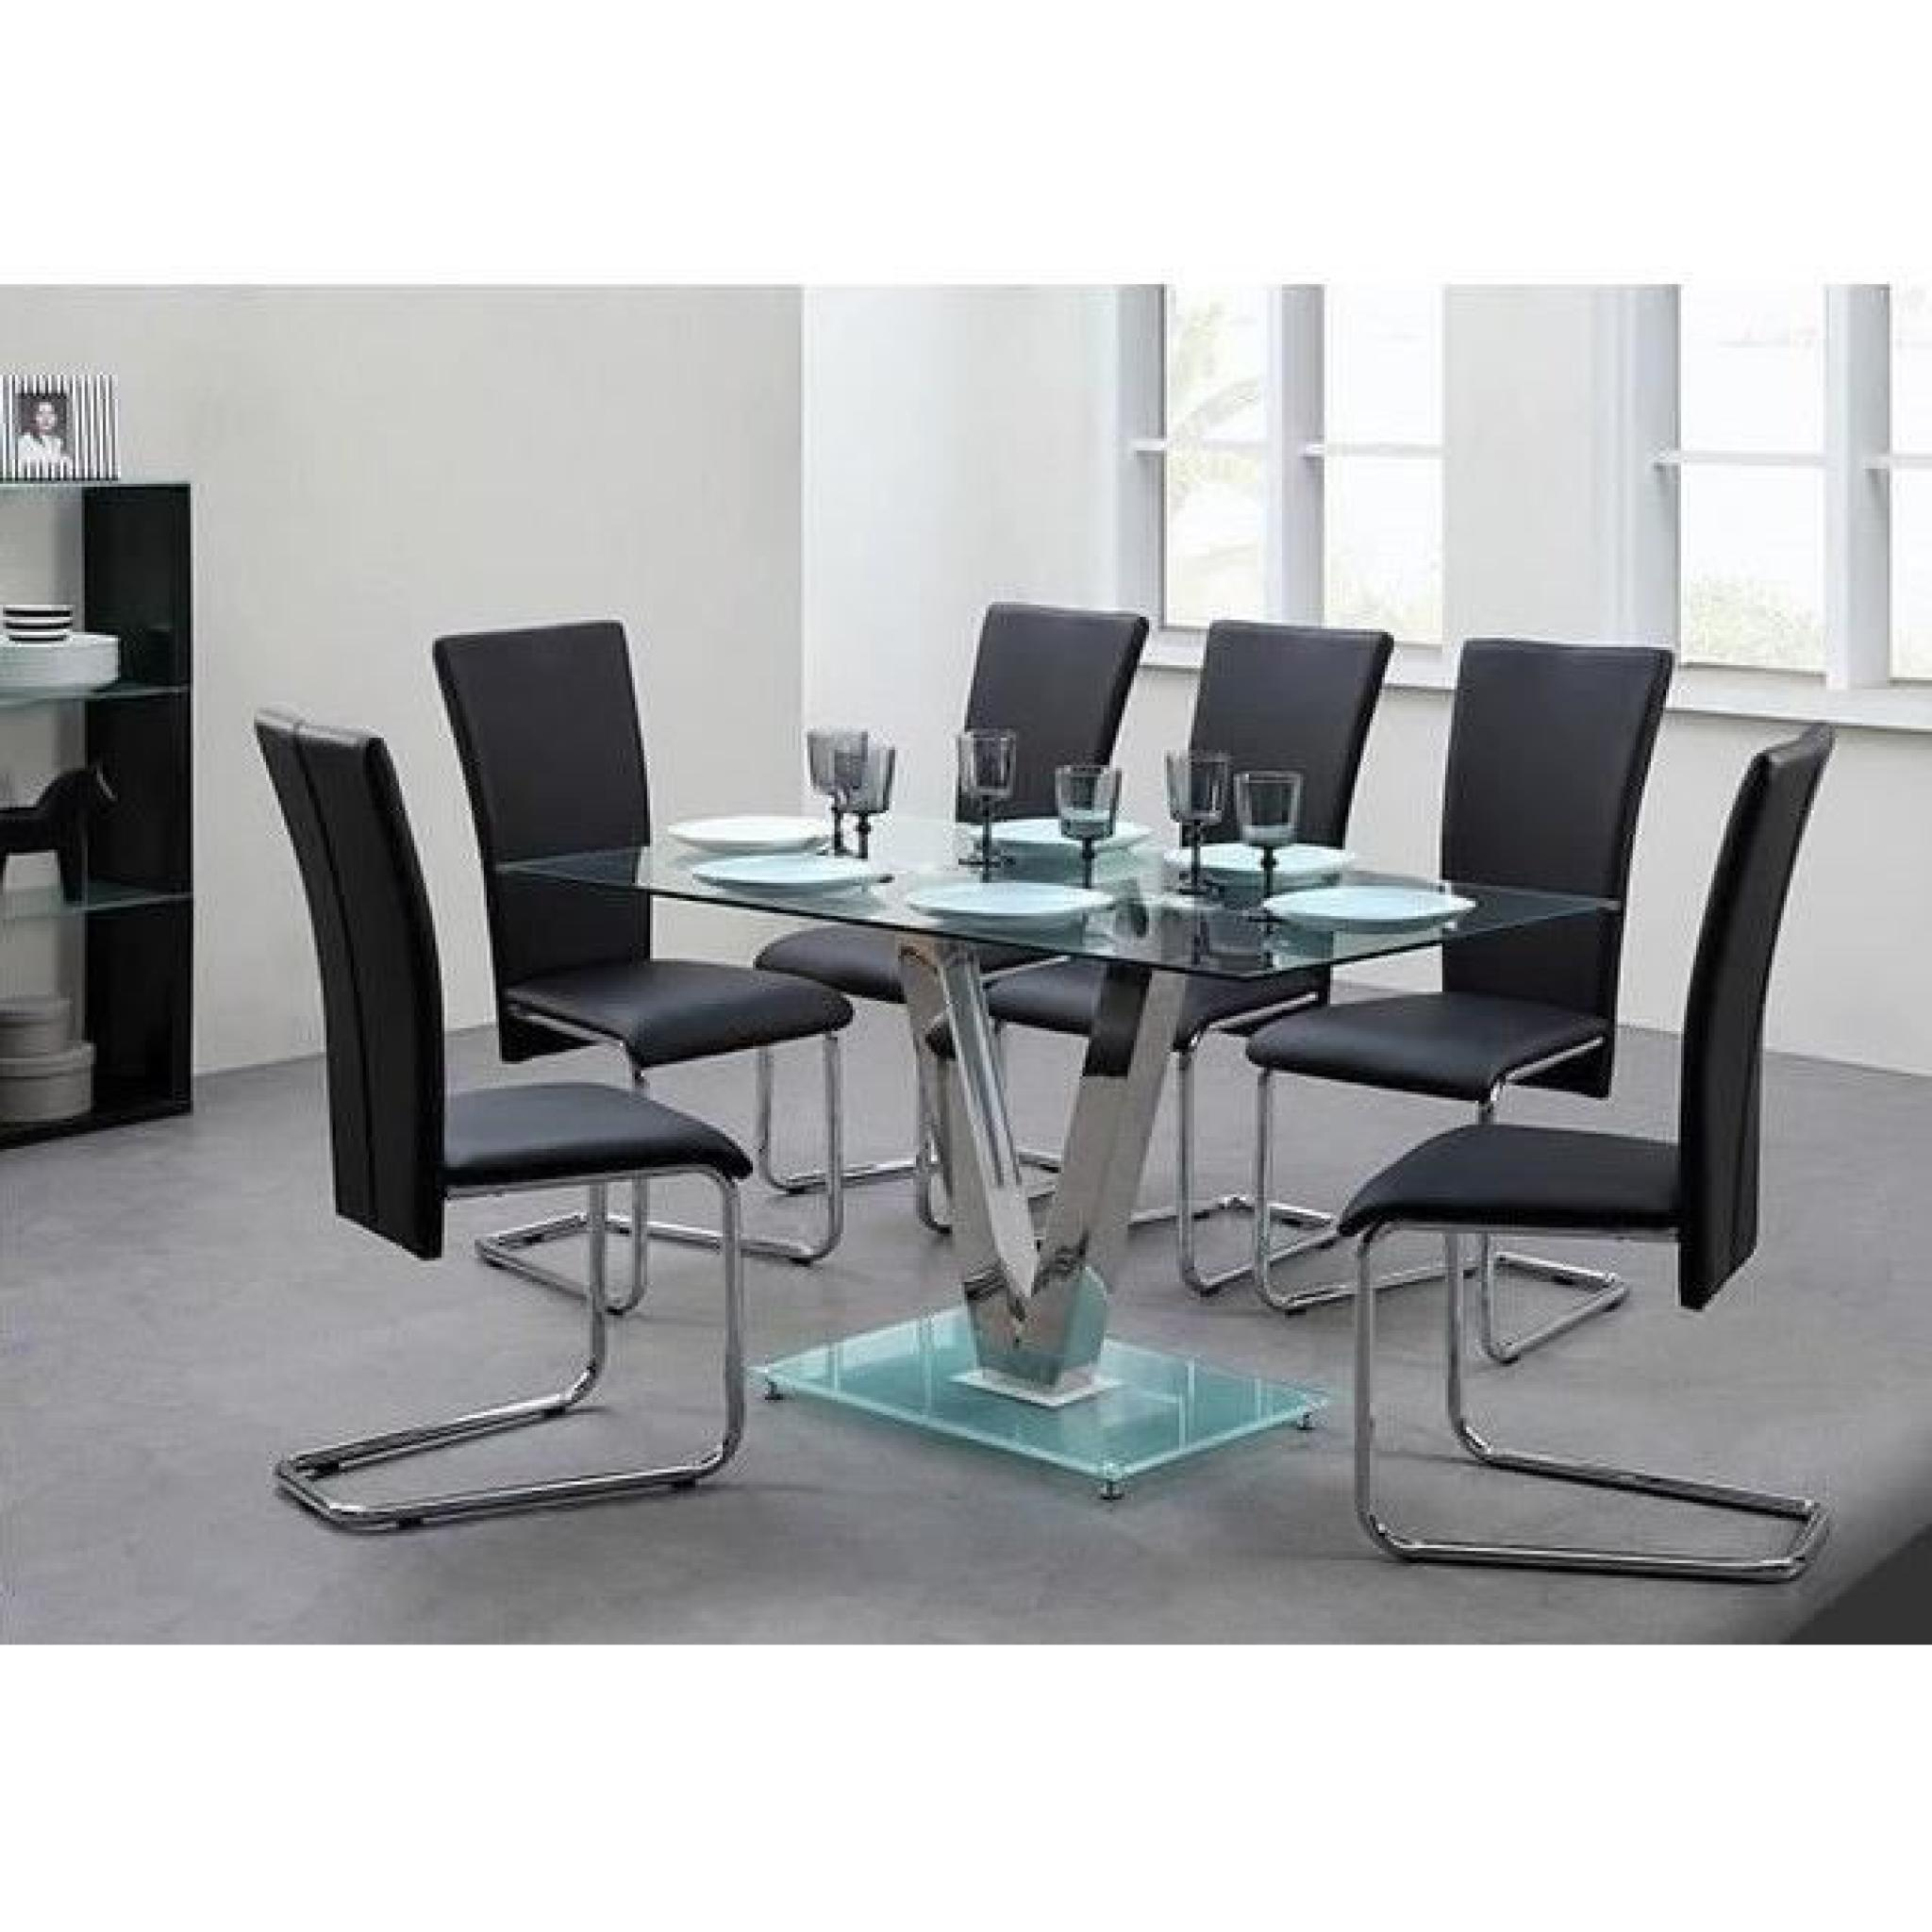 Agora ensemble table manger 6 chaises en simili noir for Ensemble table et chaises de salle a manger